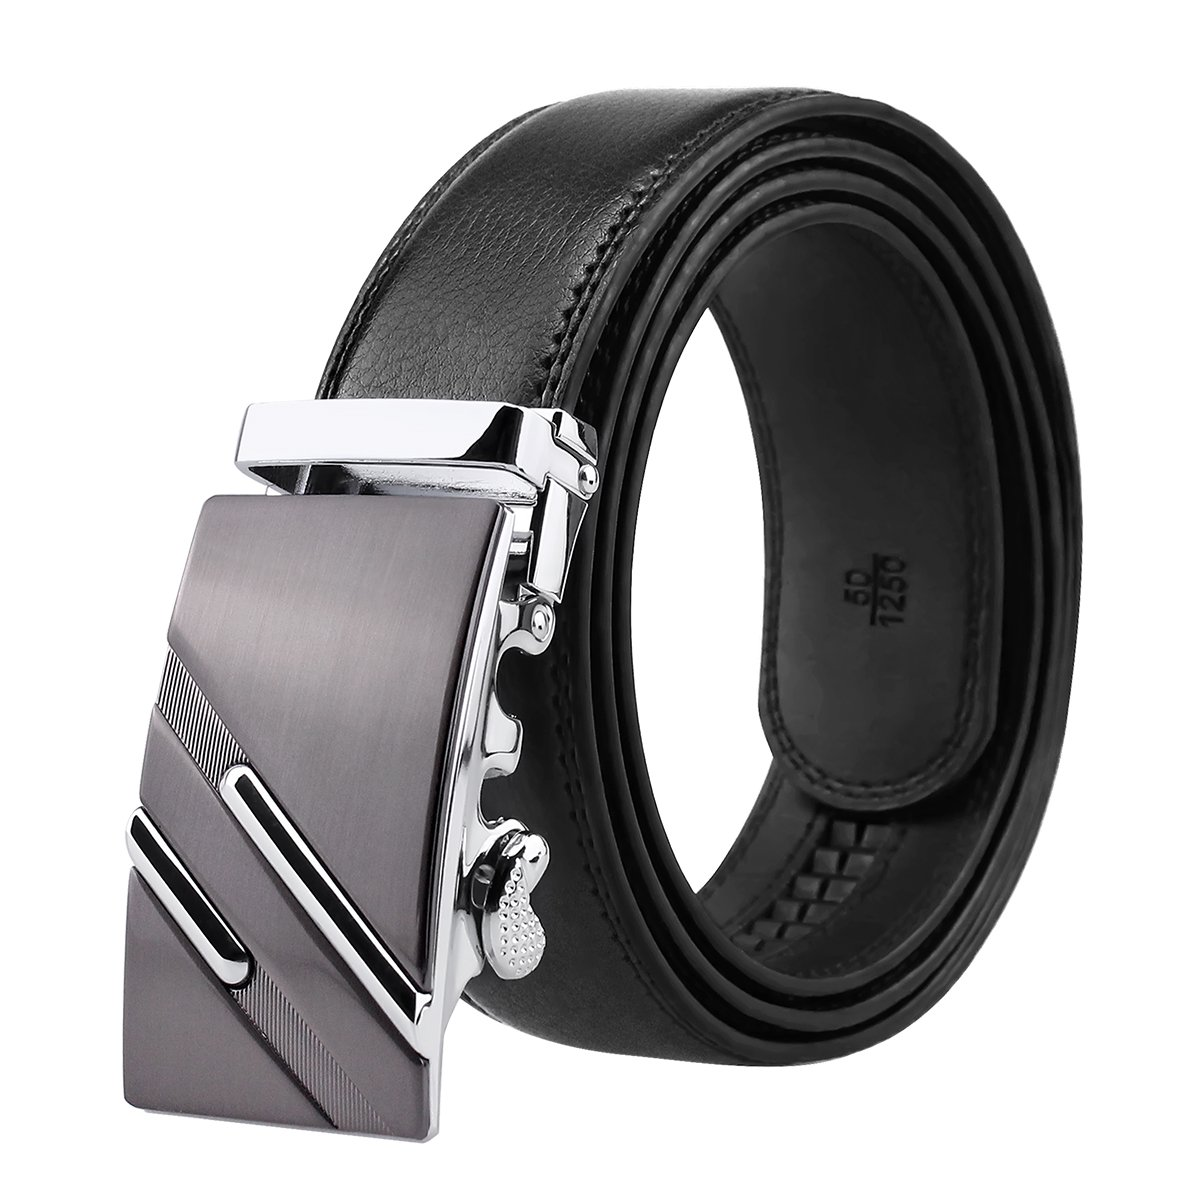 Men's Genuine Leather Ratchet Belt Black Dress Belt with Automatic Buckle 1 3/8 Wide Gift Box